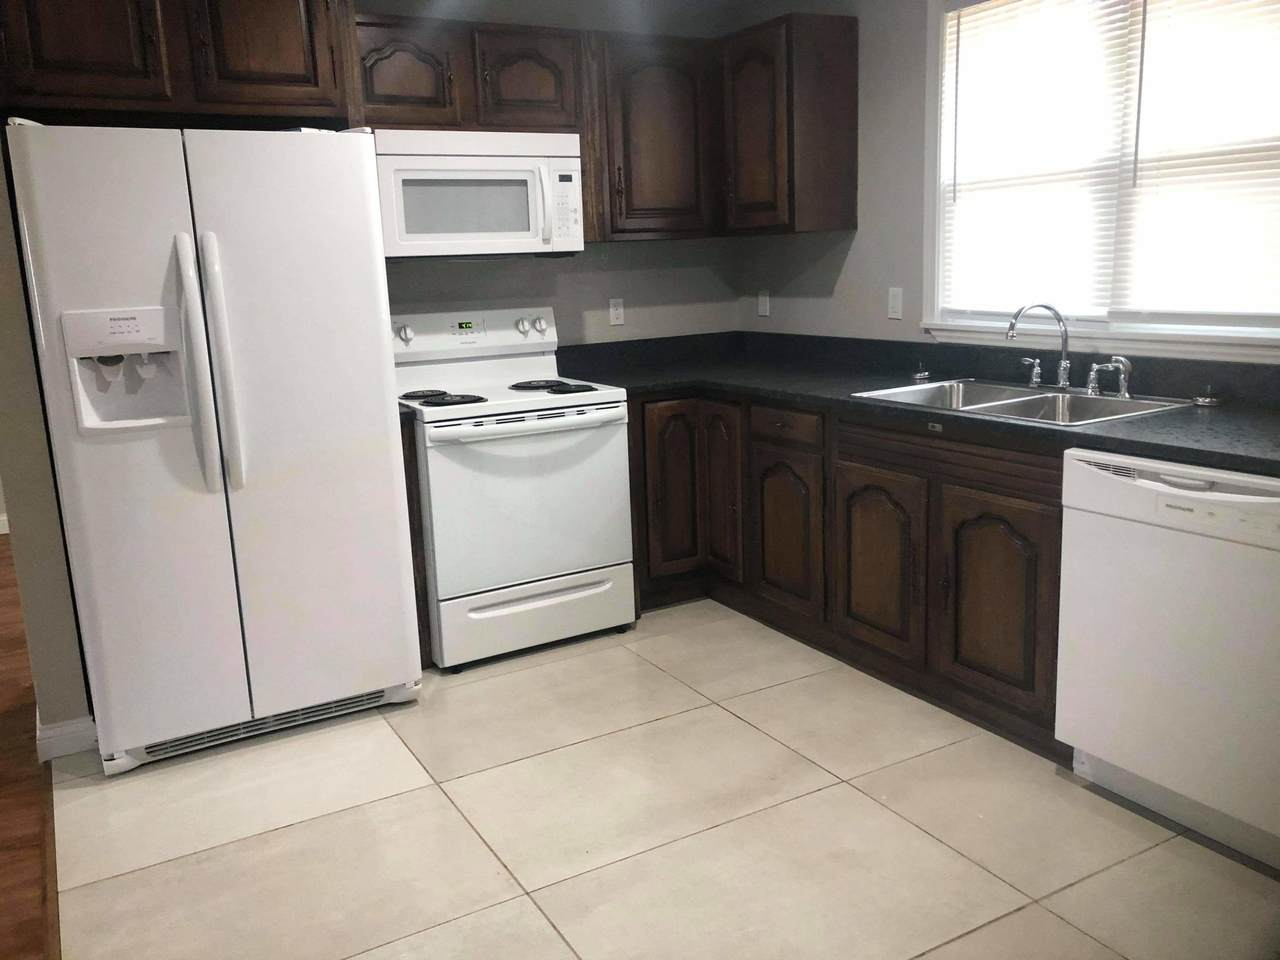 https://bt-photos.global.ssl.fastly.net/kaar/1280_boomver_1_1139702-2.jpg